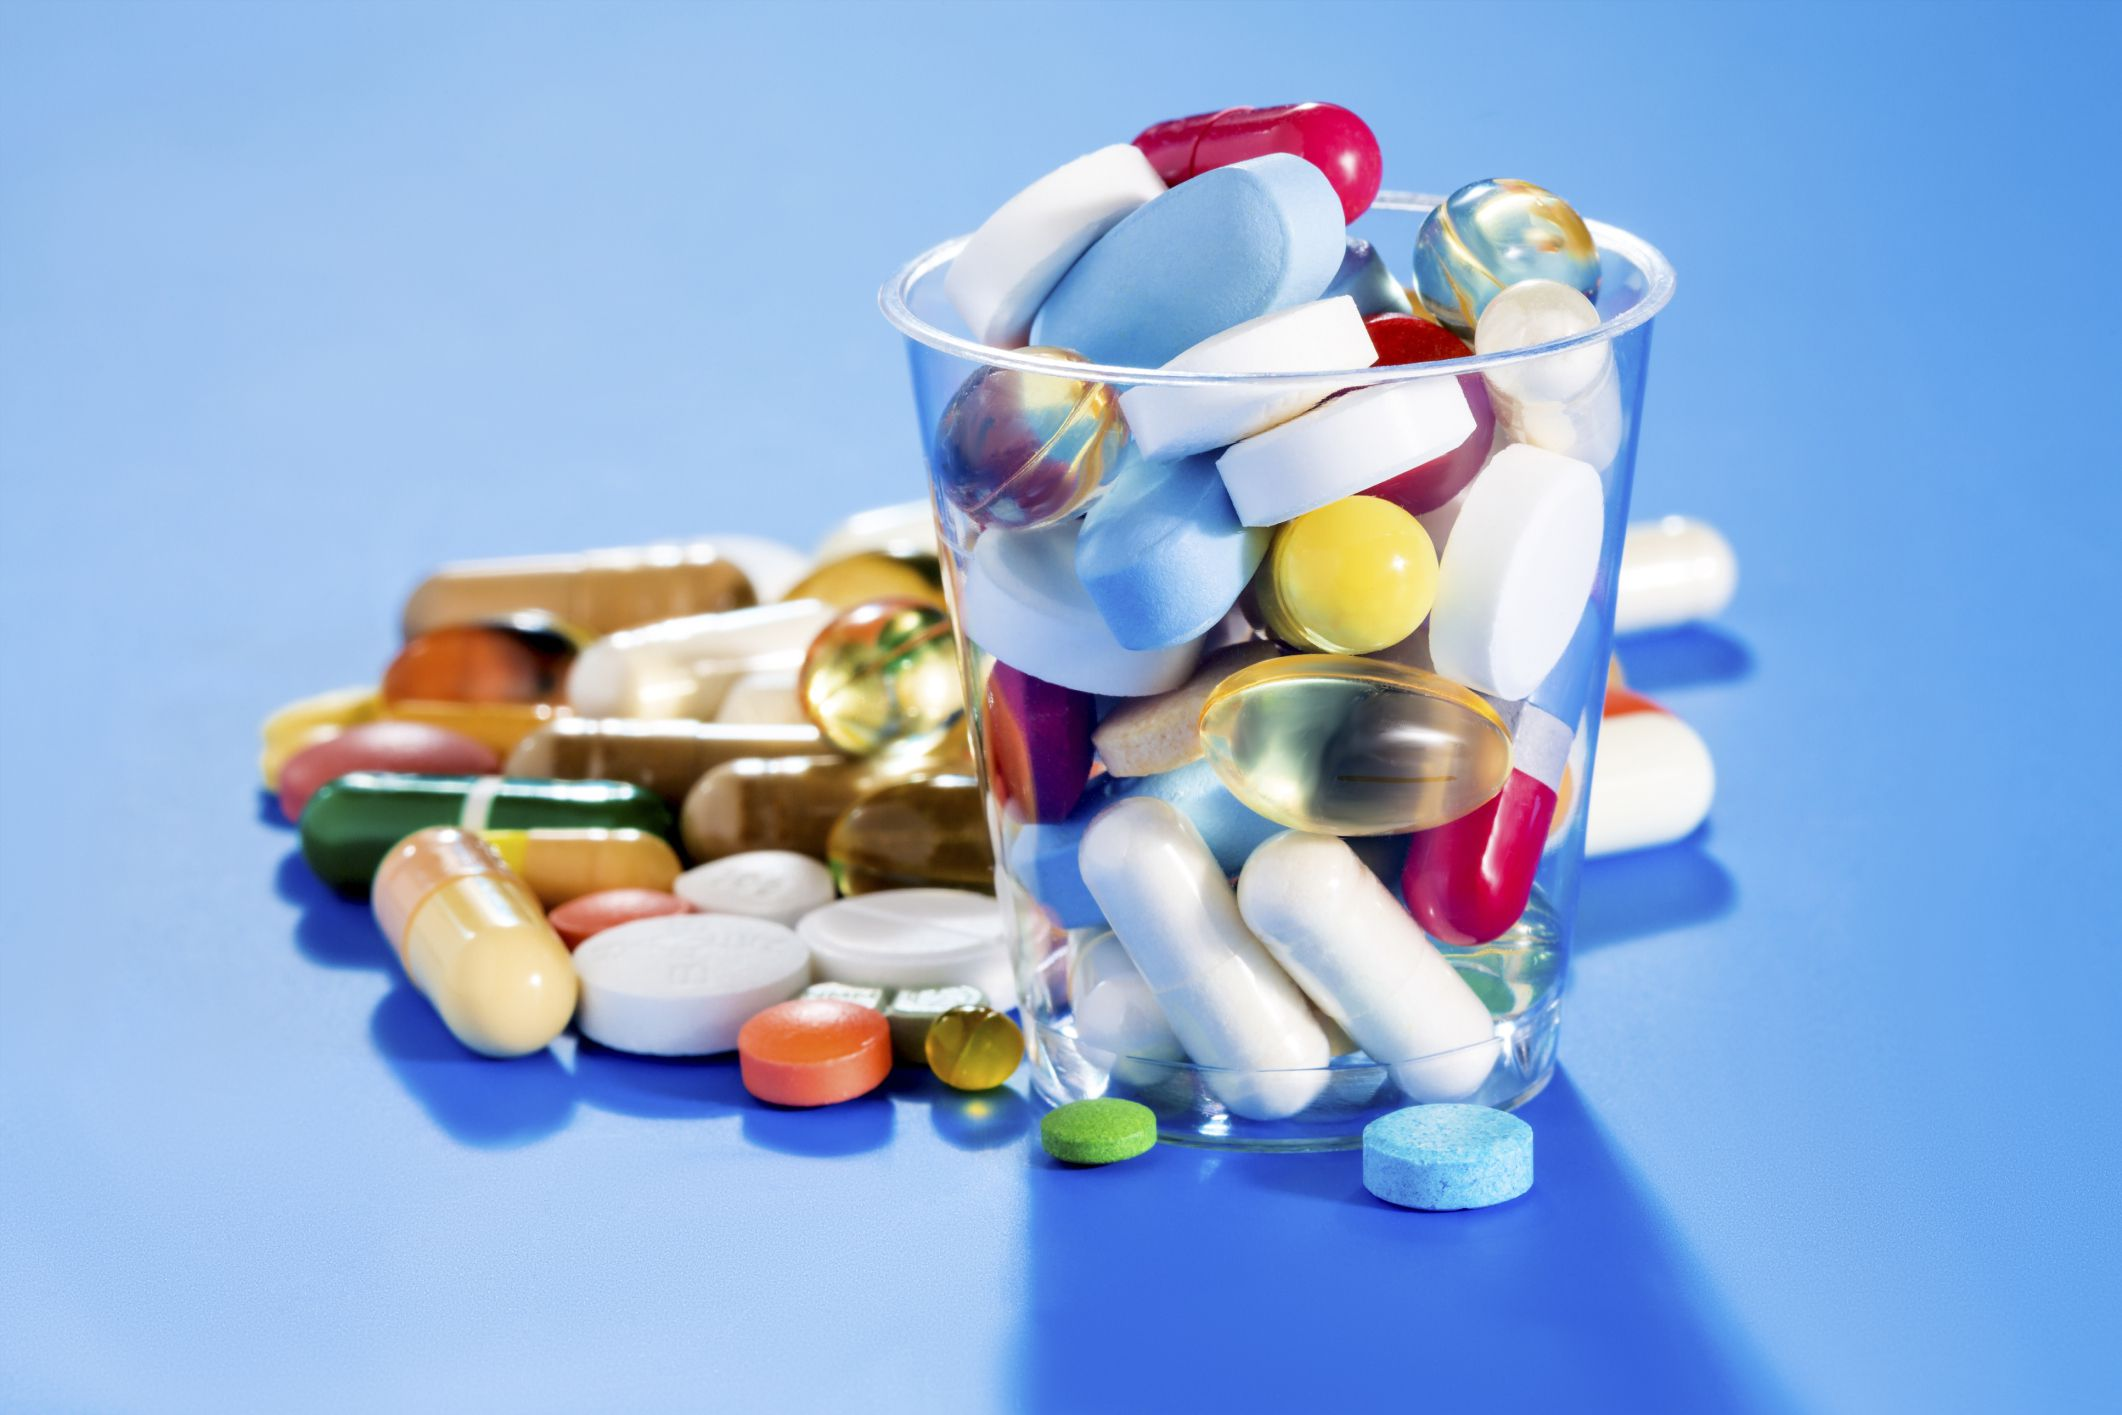 Tolerable Upper Intake Levels For Fat Soluble Vitamins